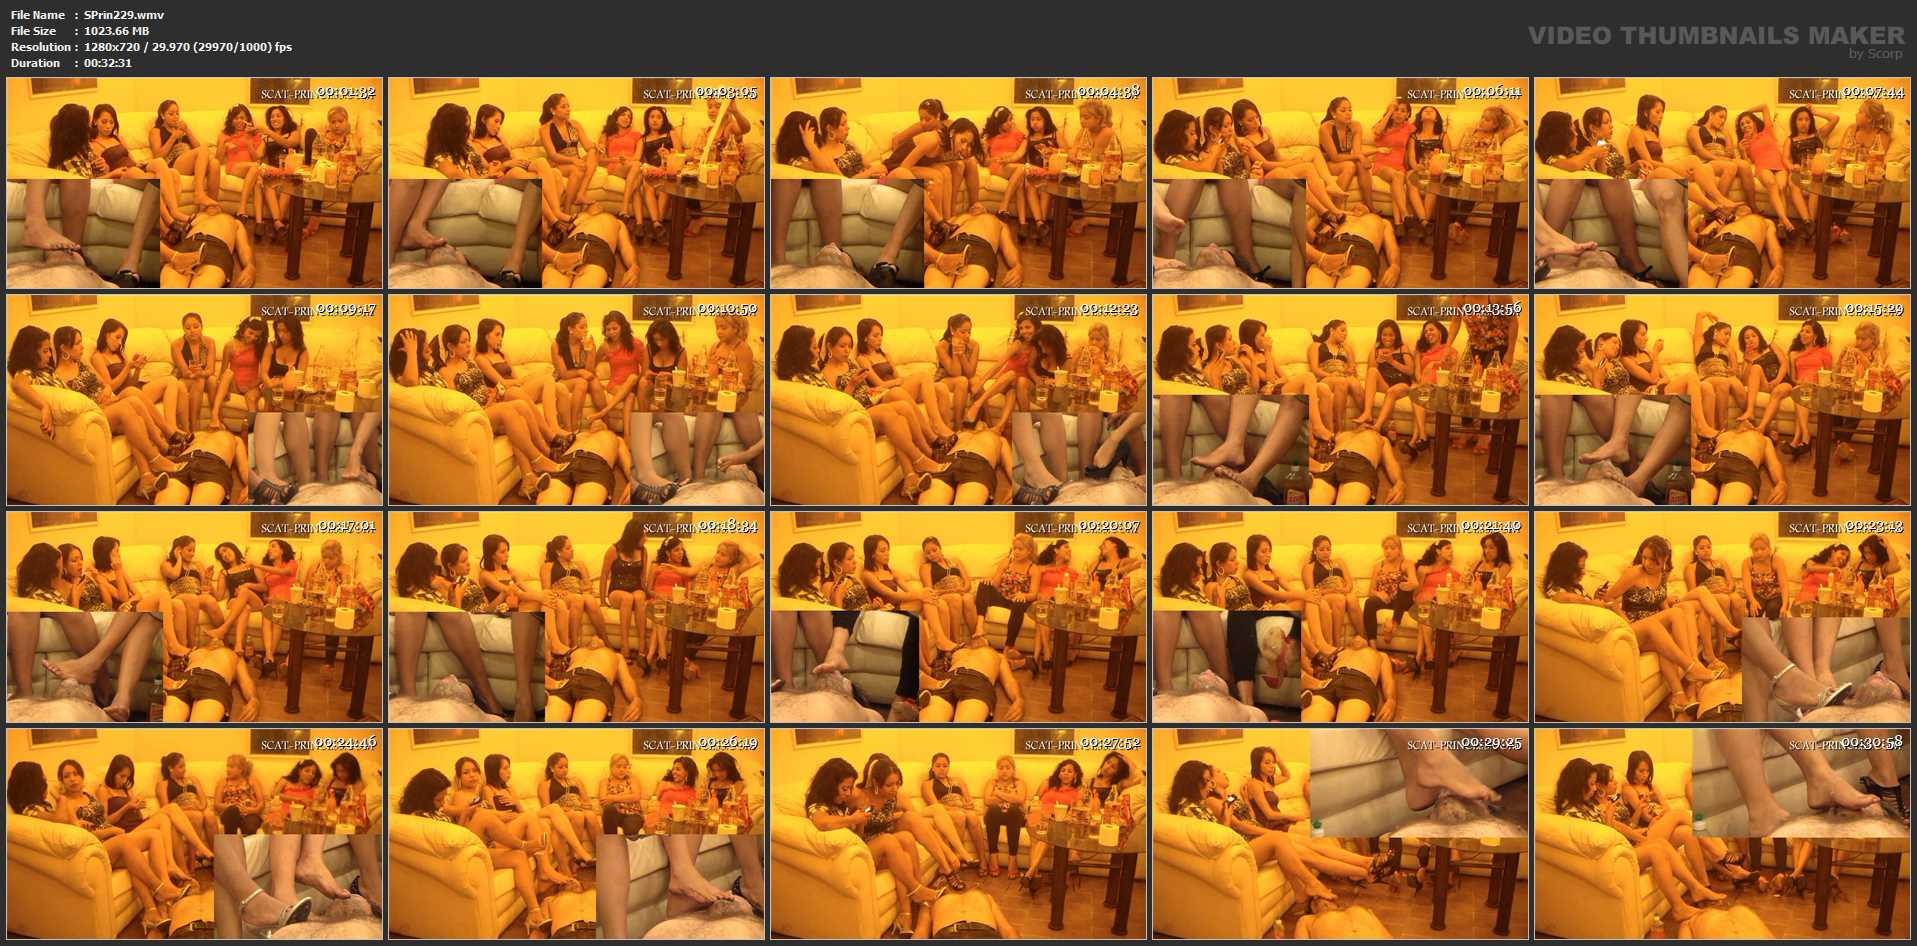 [SCAT-PRINCESS] Facesitting and Shitting Party Part 1 [HD][720p][WMV]